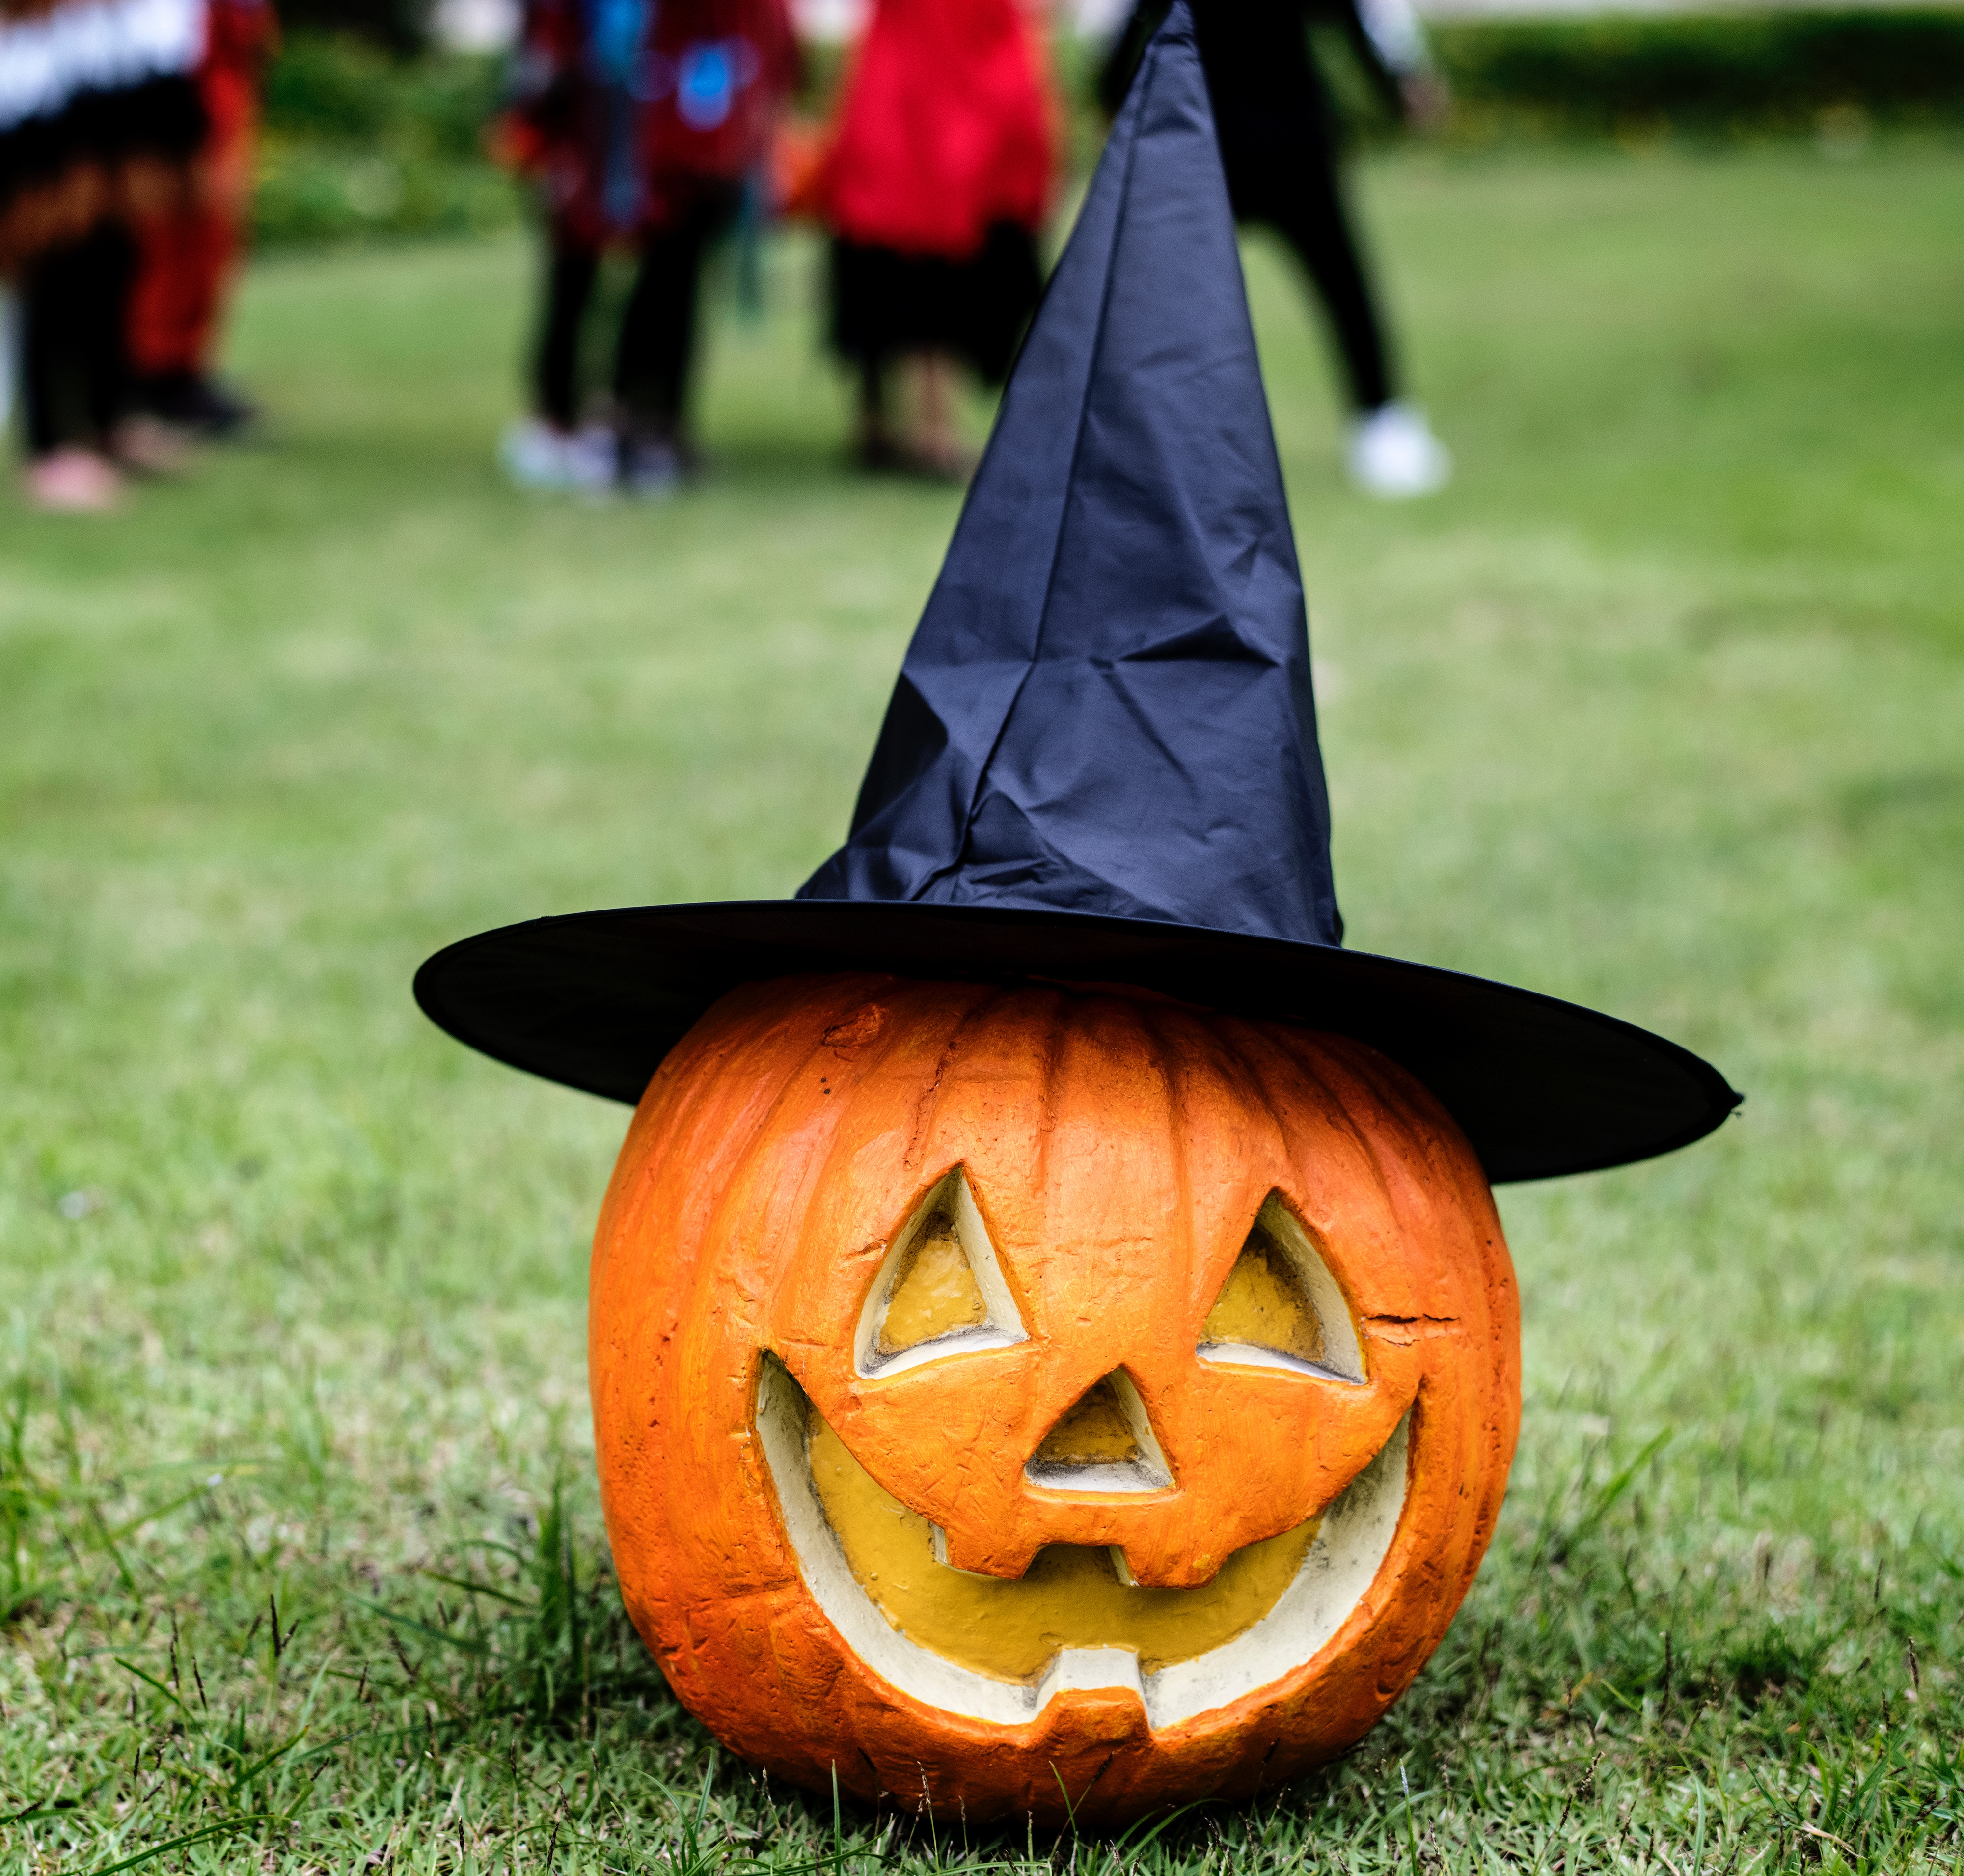 over 30 ideas for literary halloween costumes | imaginelearning